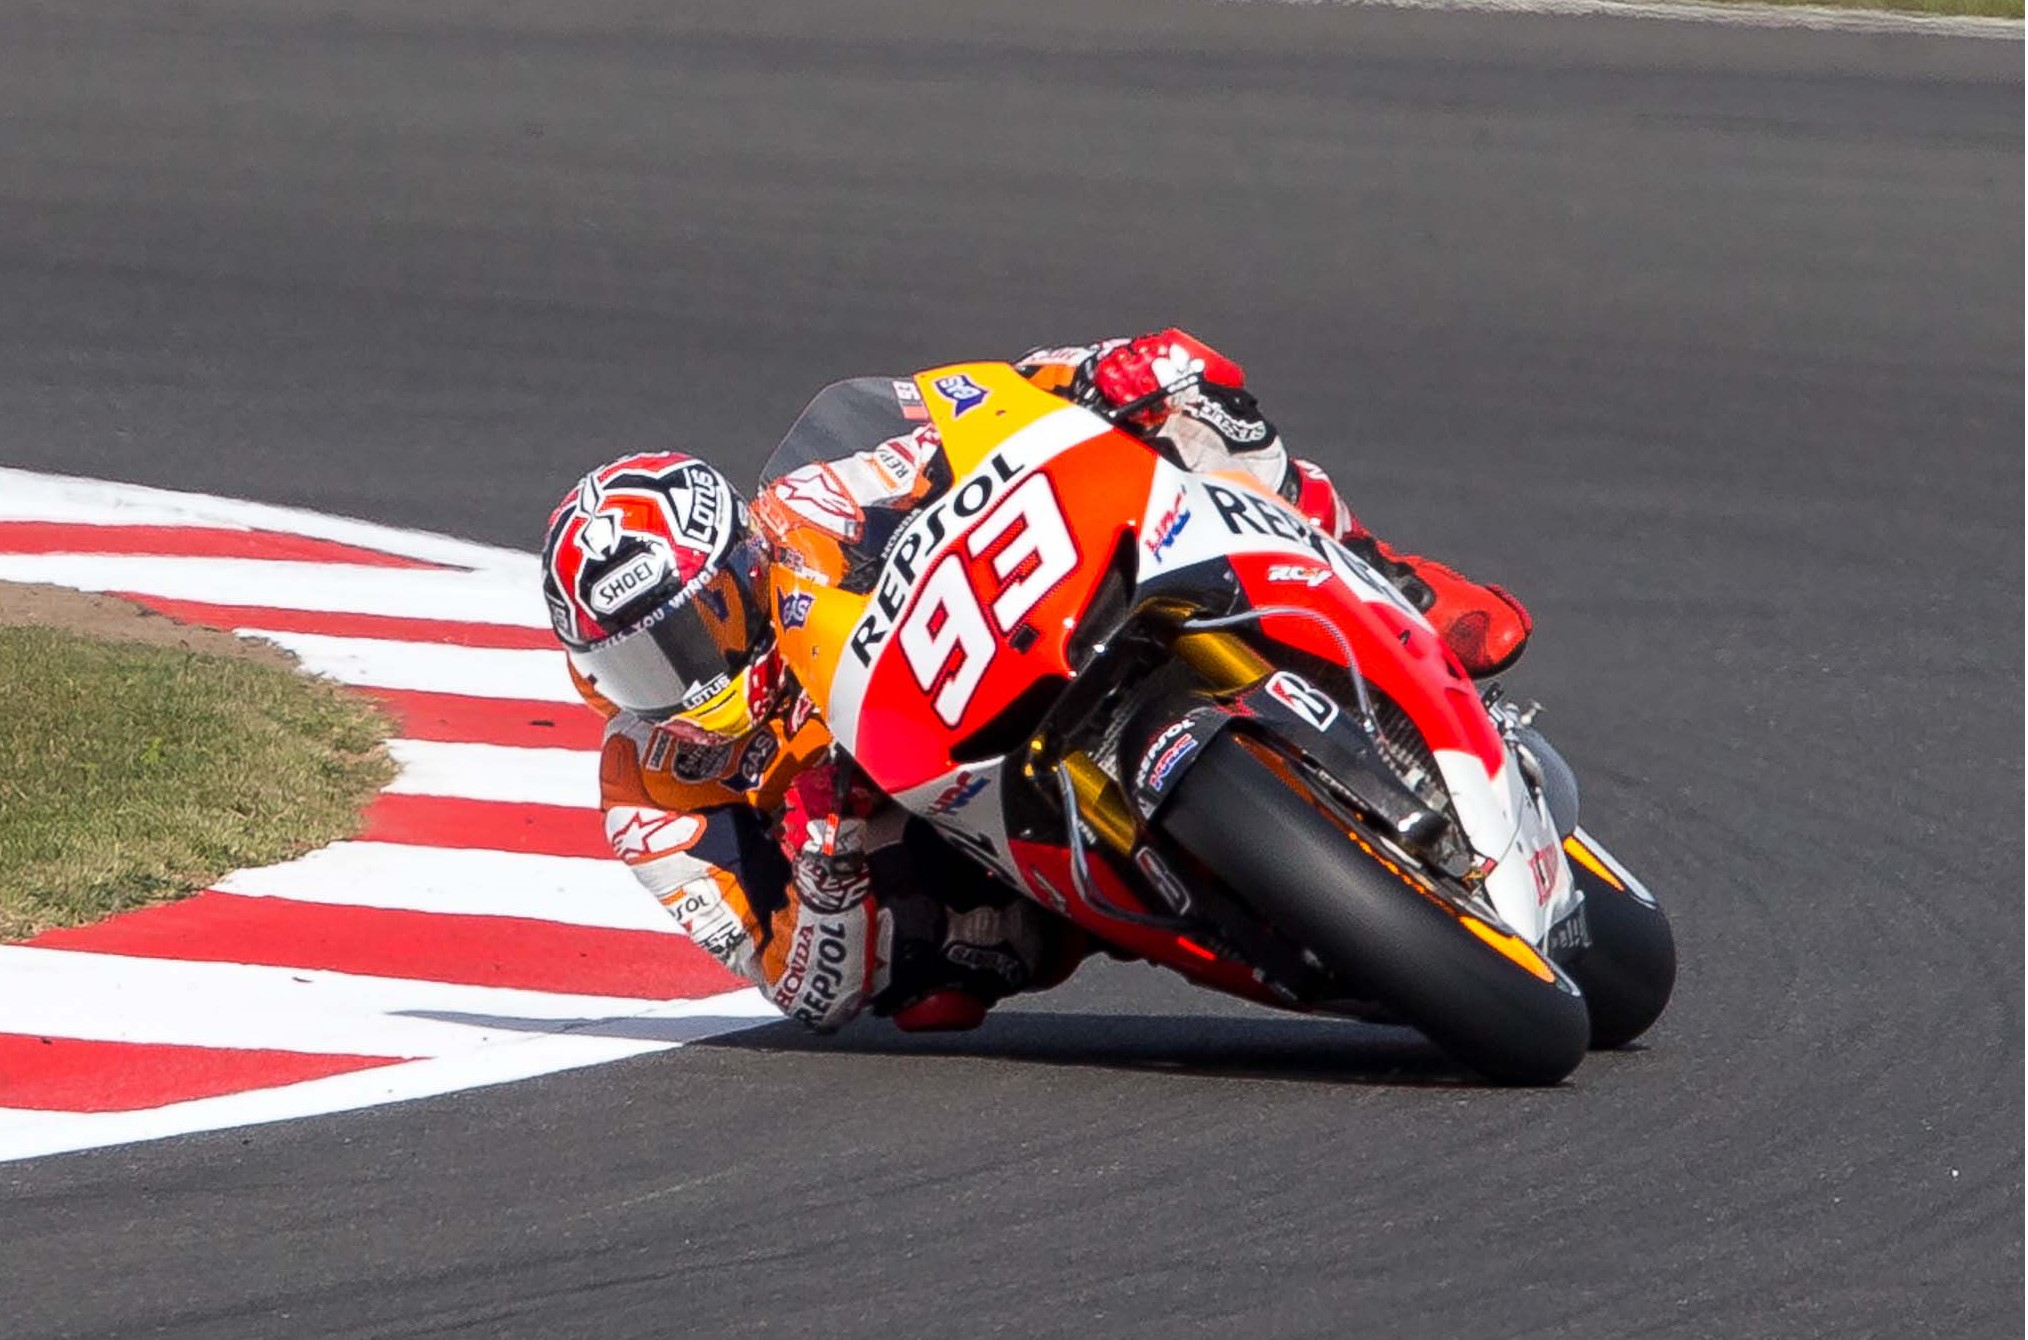 File:Marc Marquez 2013.jpg - Wikimedia Commons